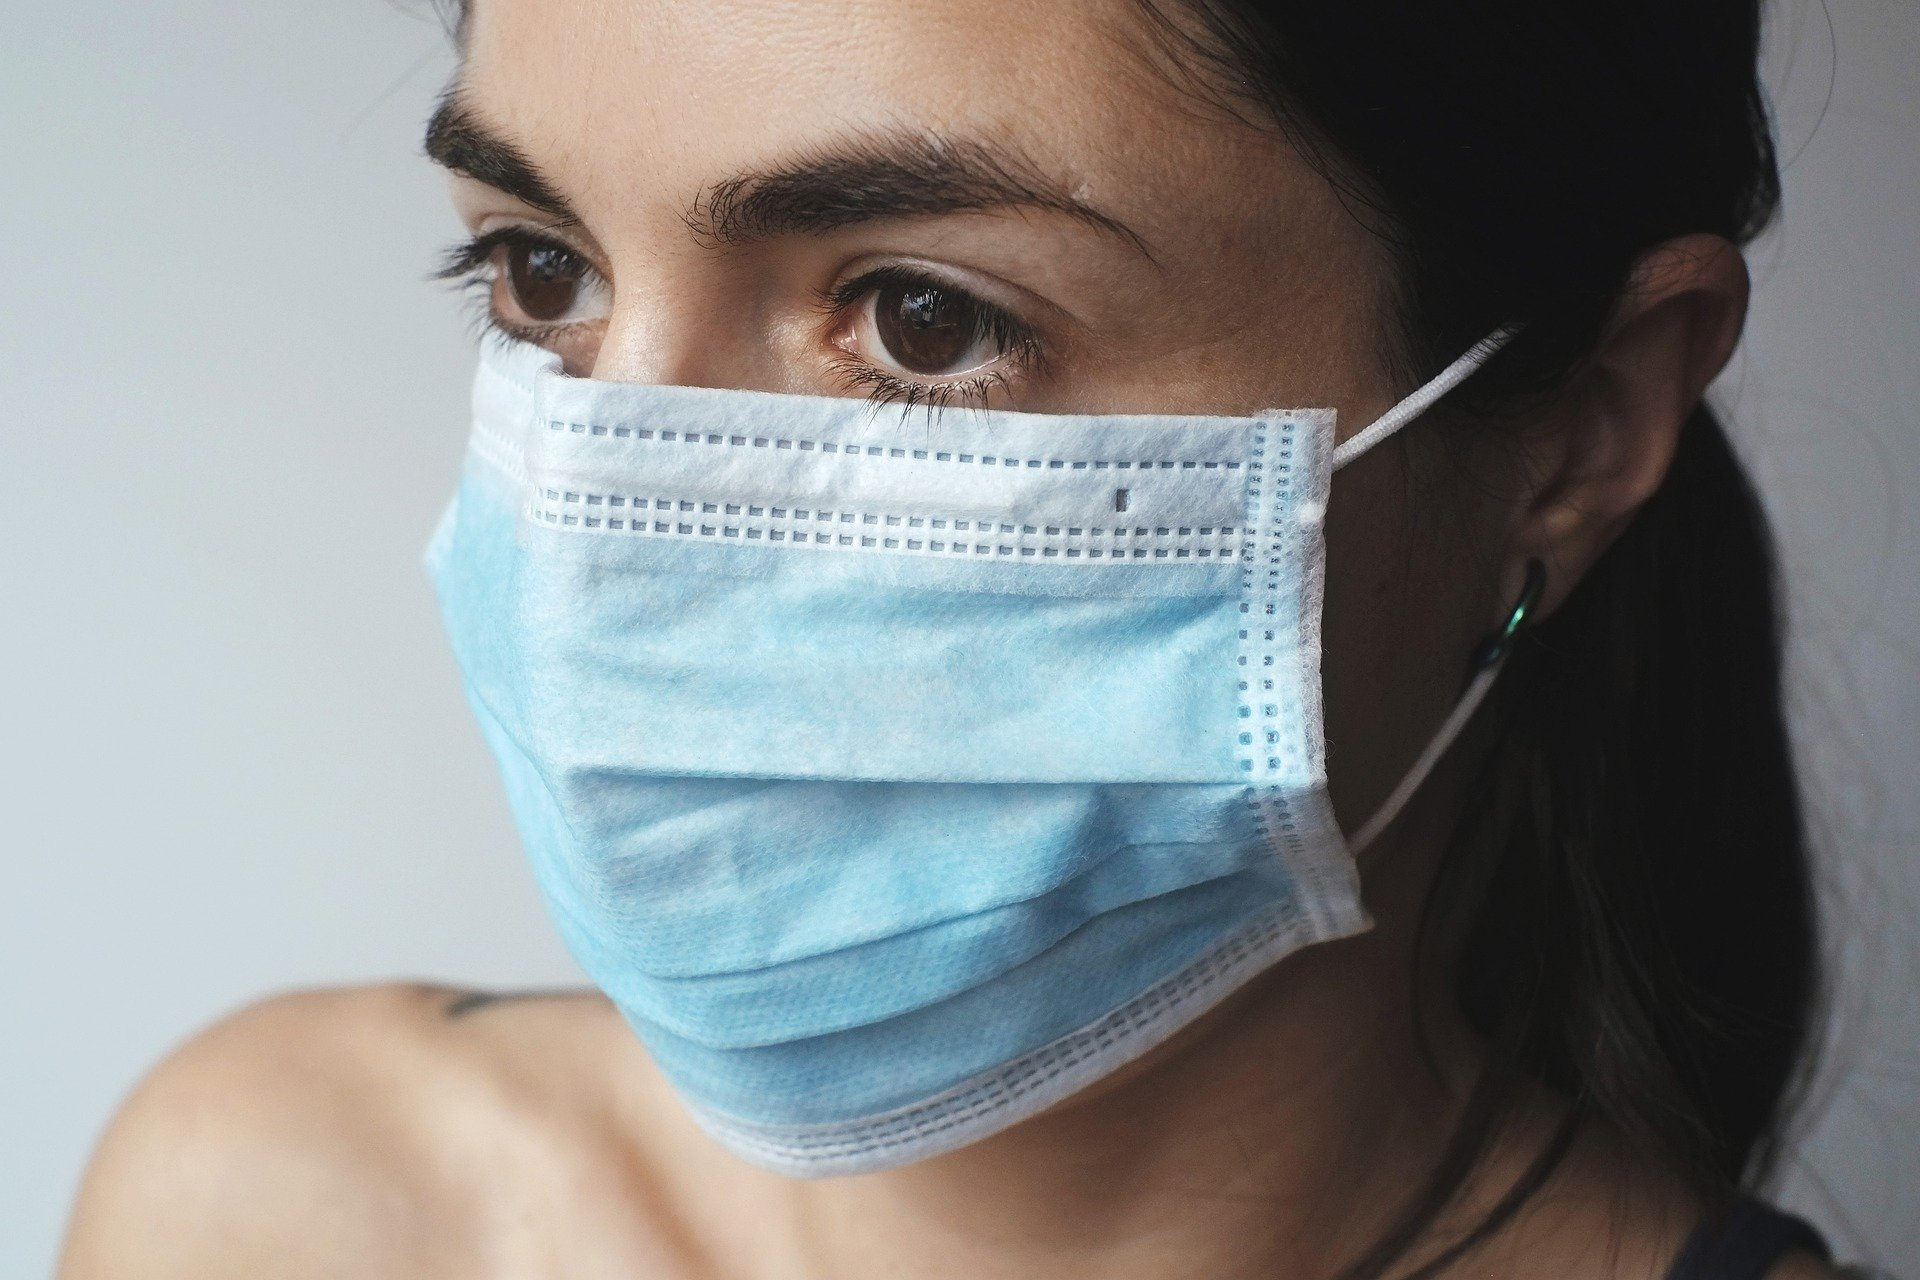 A woman wears a surgical face mask